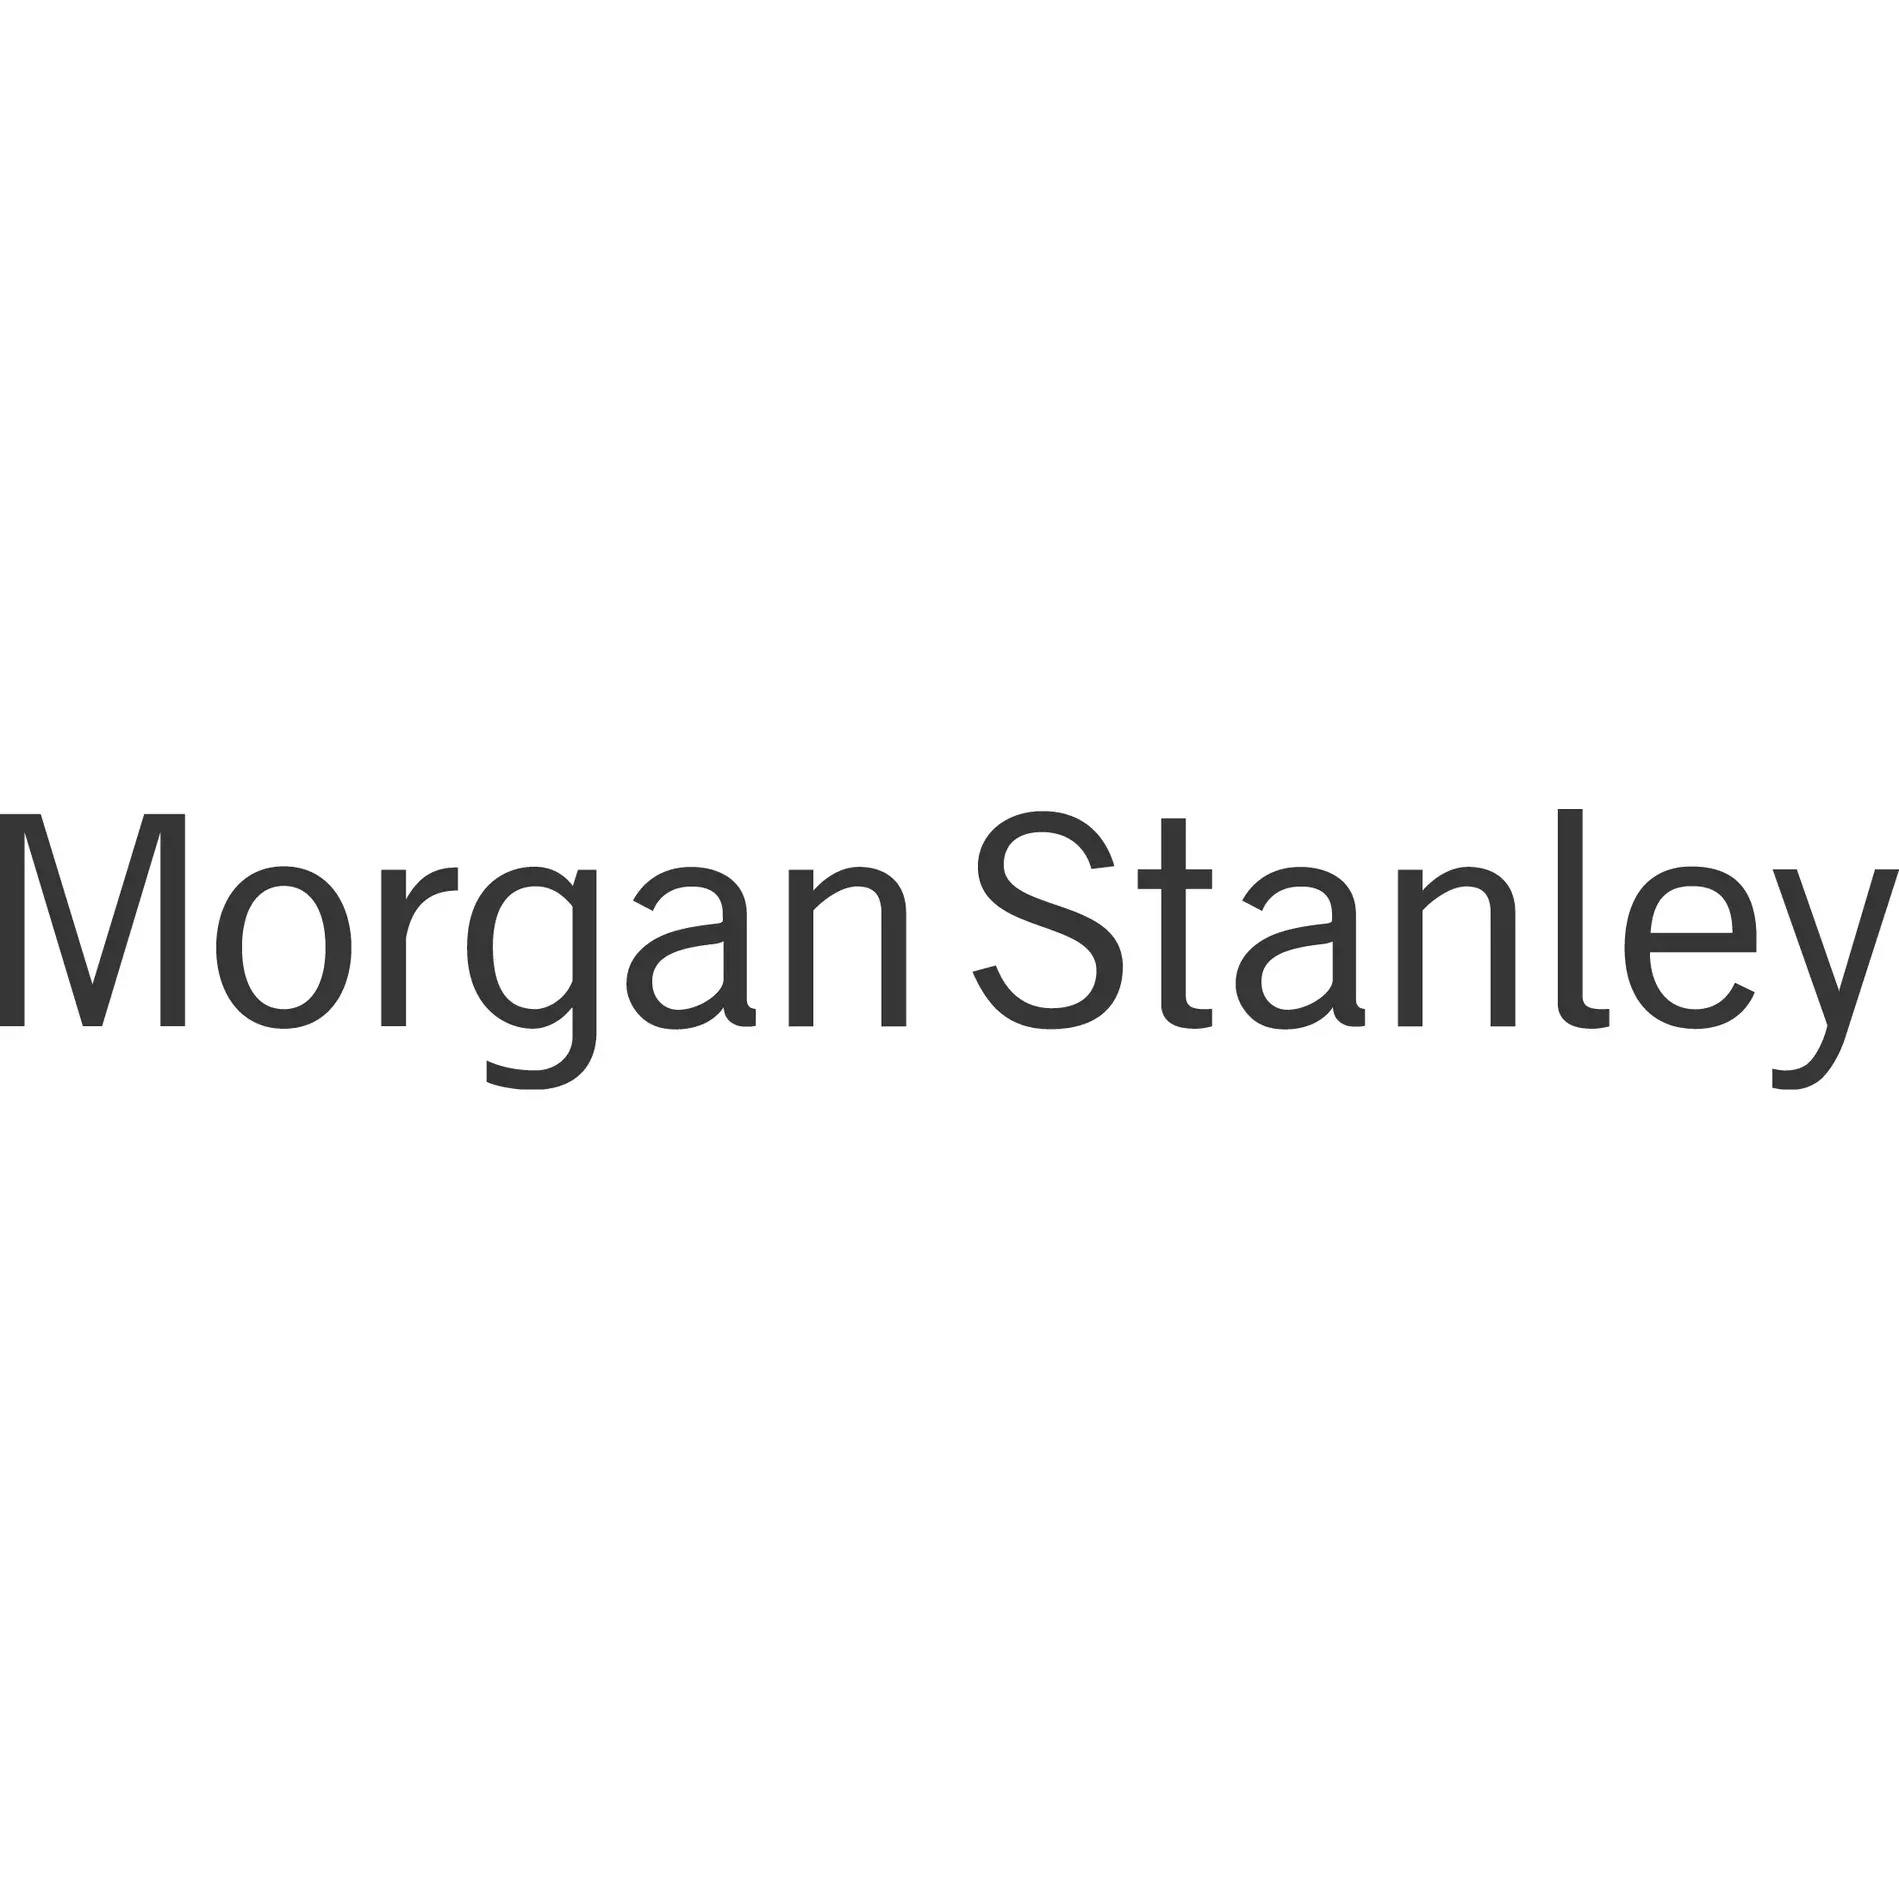 The Scott House Group - Morgan Stanley